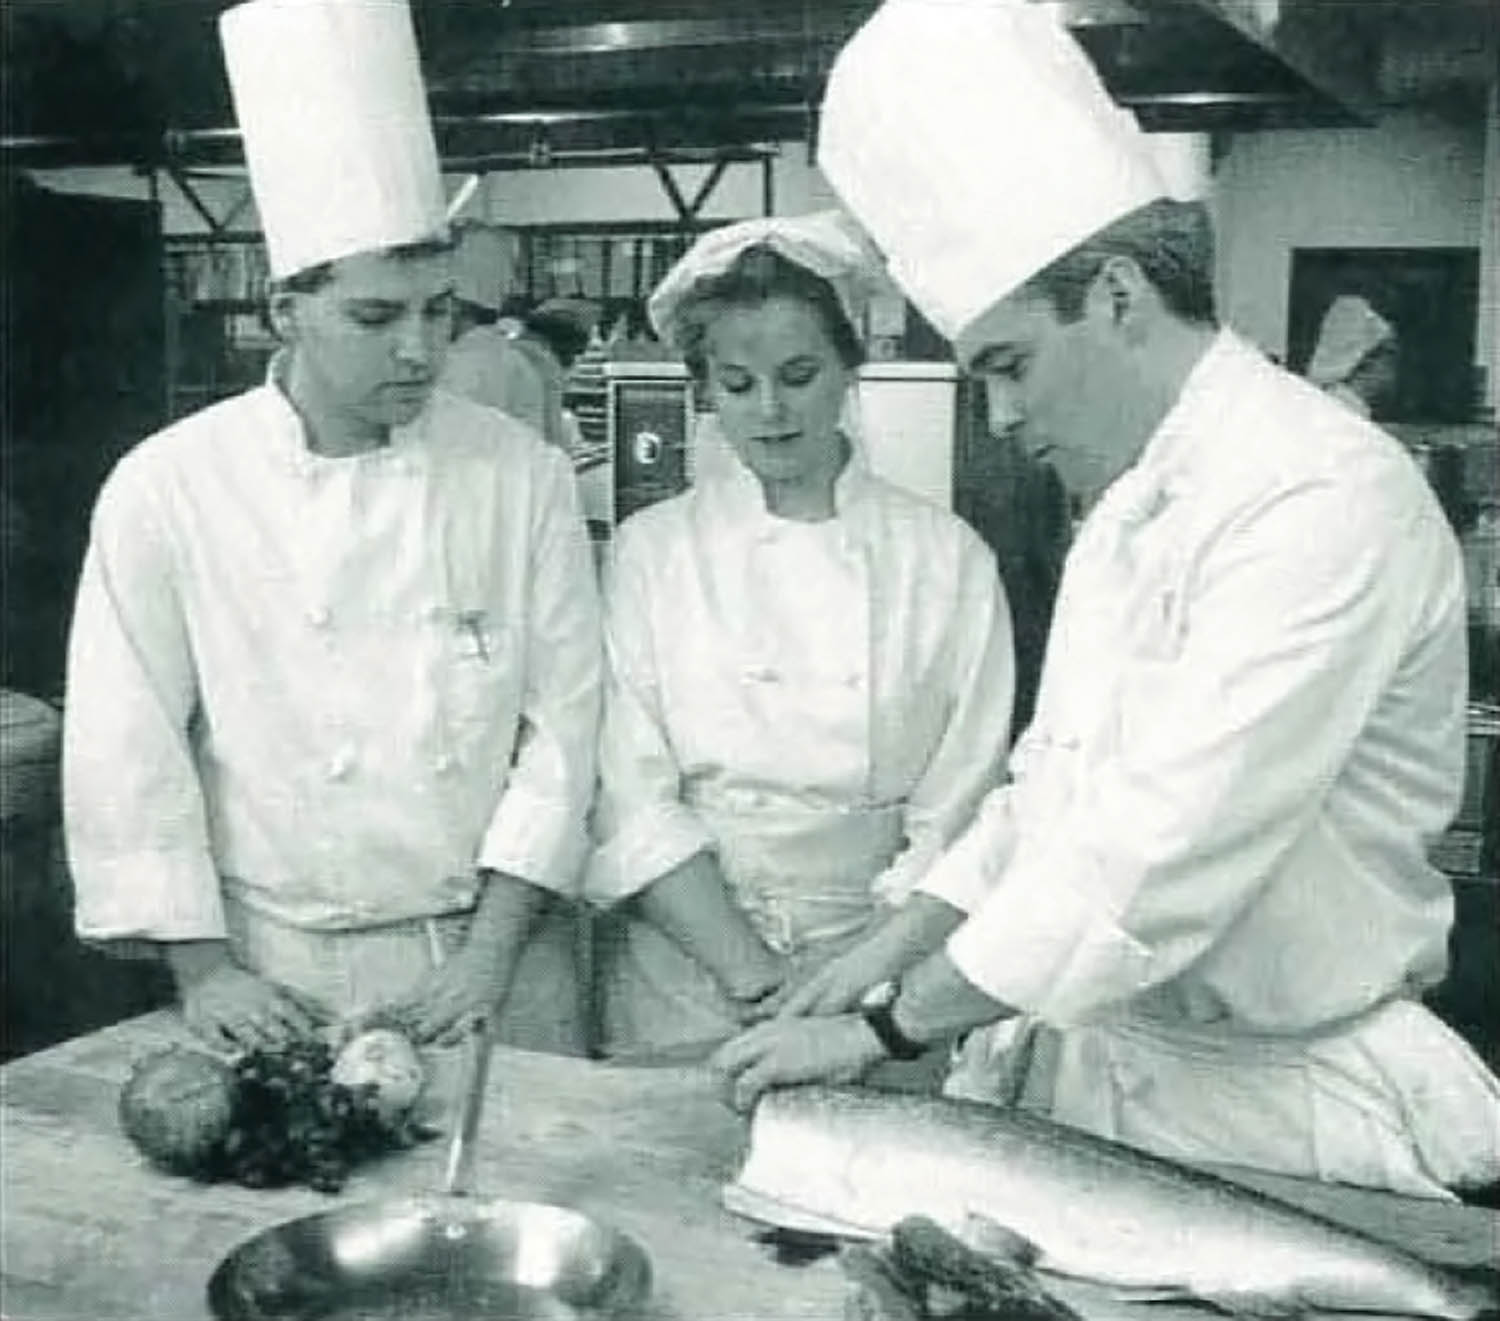 During preparation for the college's first Visiting Chef dinner in 1992, students Ric Newton and Vanessa Buck study the technique of Visiting Chef Richard L. Kimble Jr. Photo by Cindy Davis Meixel.